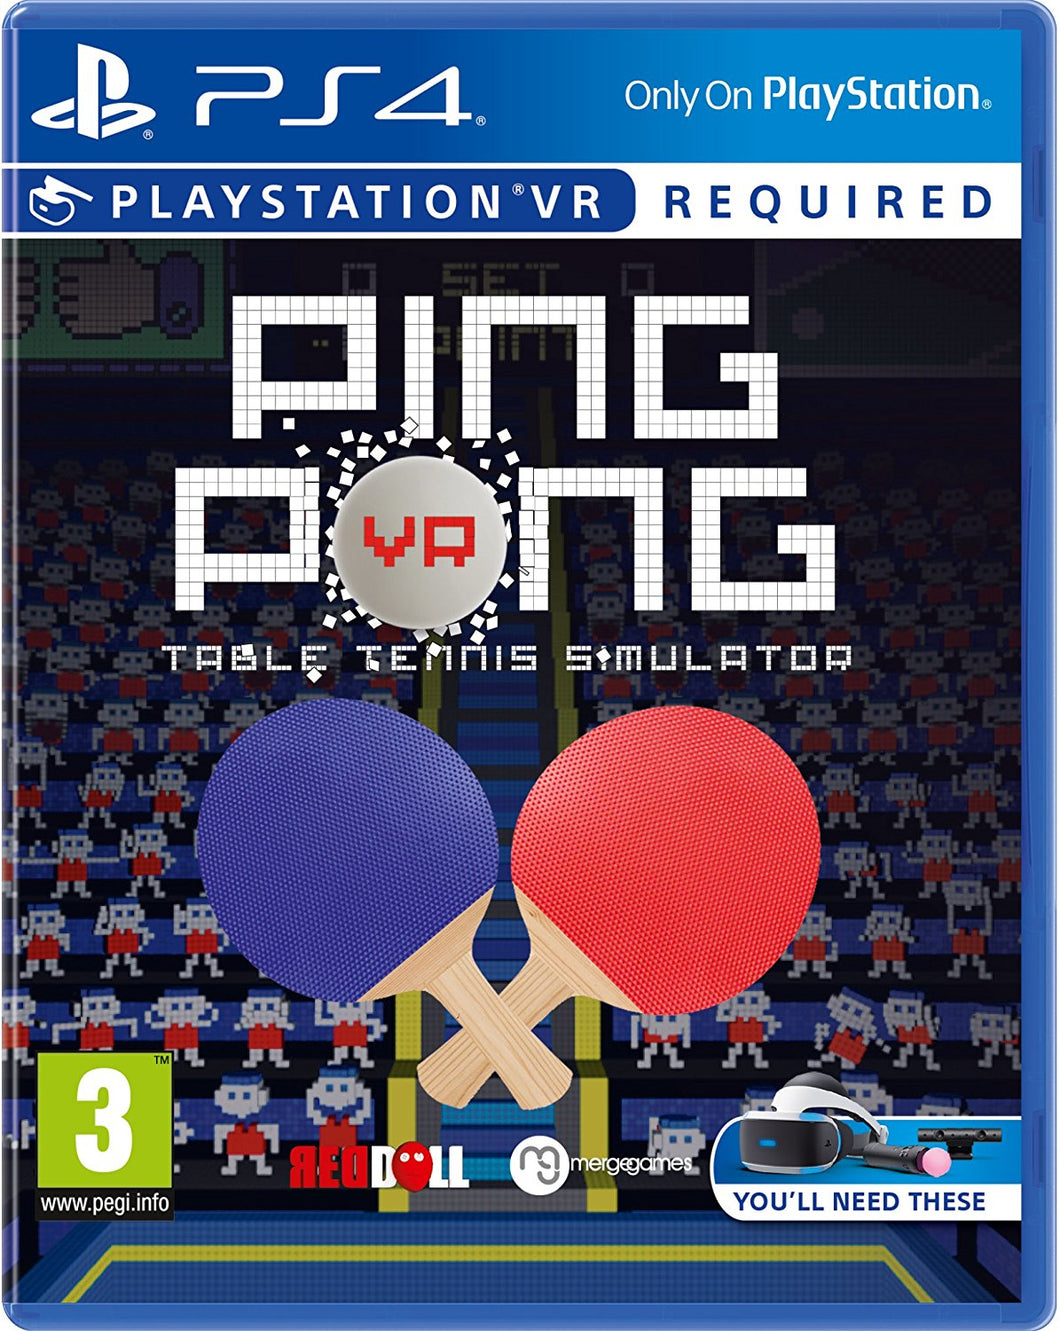 PING PONG - Table Tennis Simulator - FRENCH Packaging